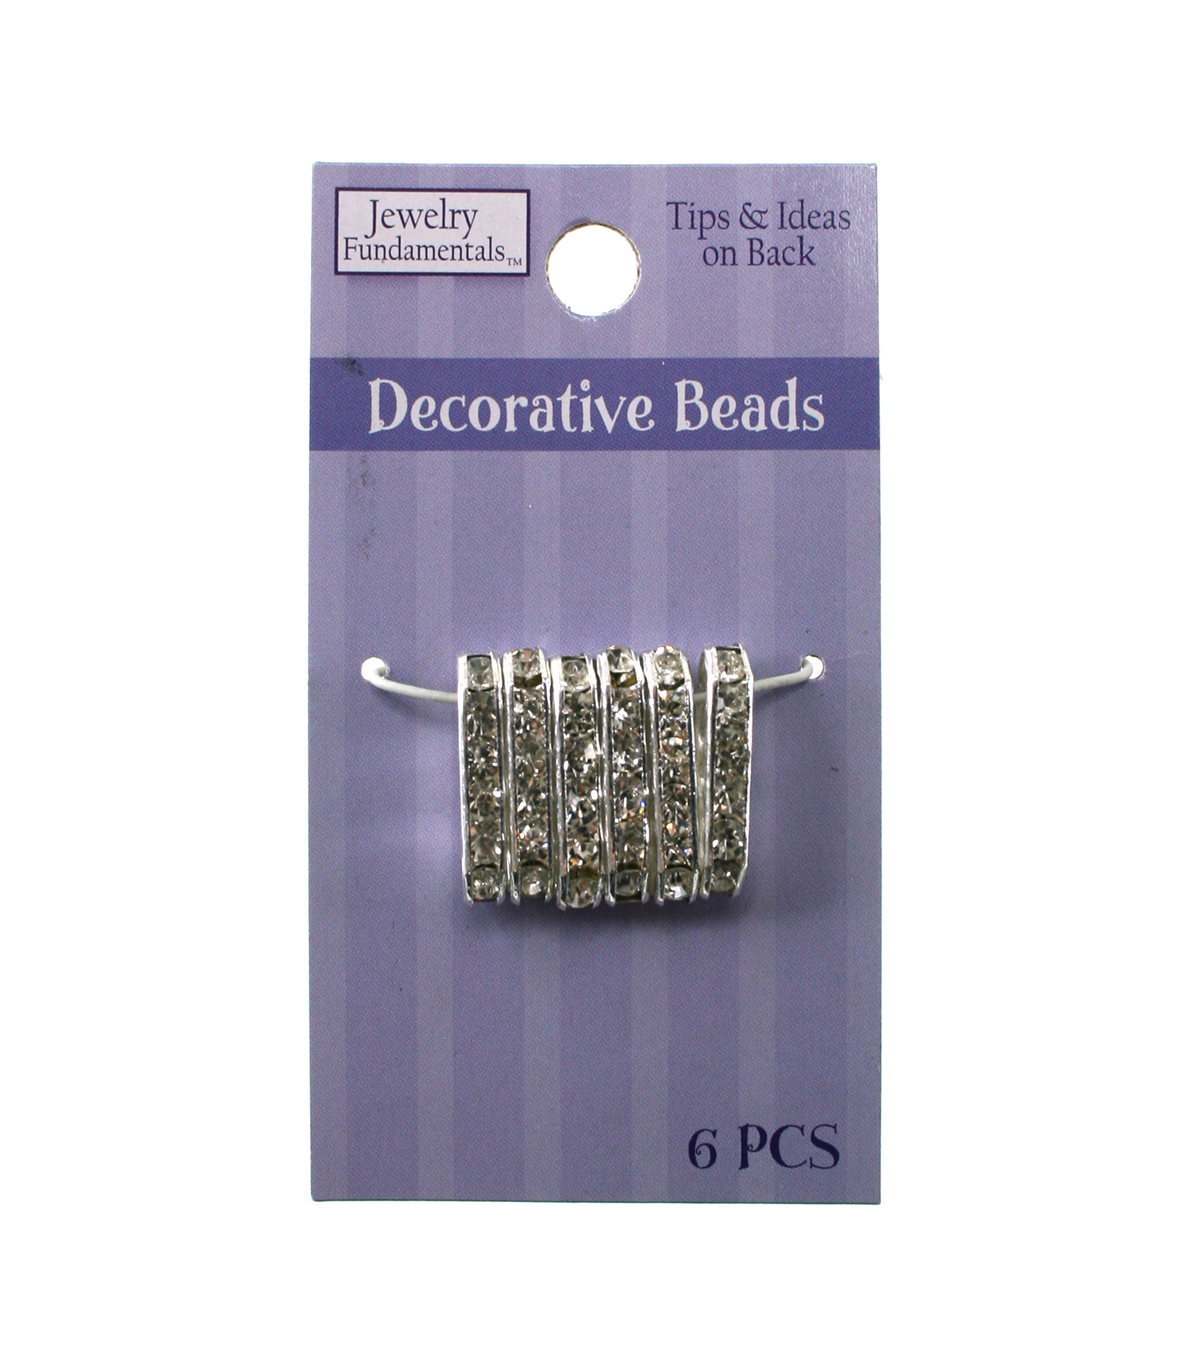 Jewelry Fundamentals Decorative Beads - Lg. Oblong - Silver Finish